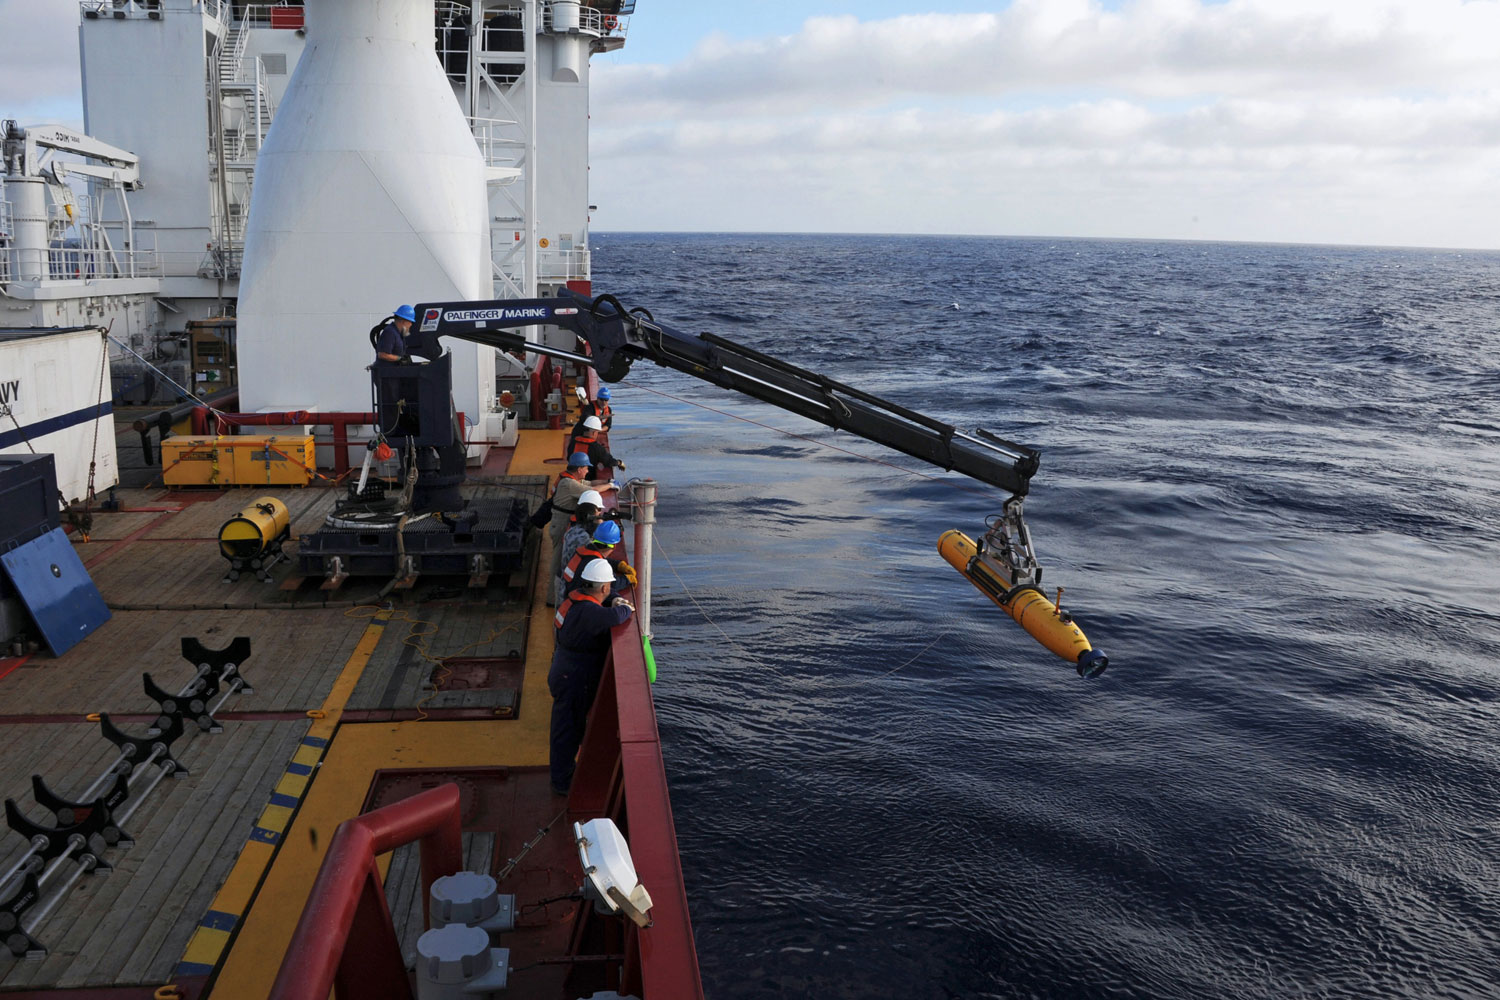 Crew aboard the Australian Defence Vessel Ocean Shield move the U.S. Navy's Bluefin-21 autonomous underwater vehicle into position for deployment in the southern Indian Ocean to look for the missing Malaysia Airlines flight MH 370, April 14, 2014.